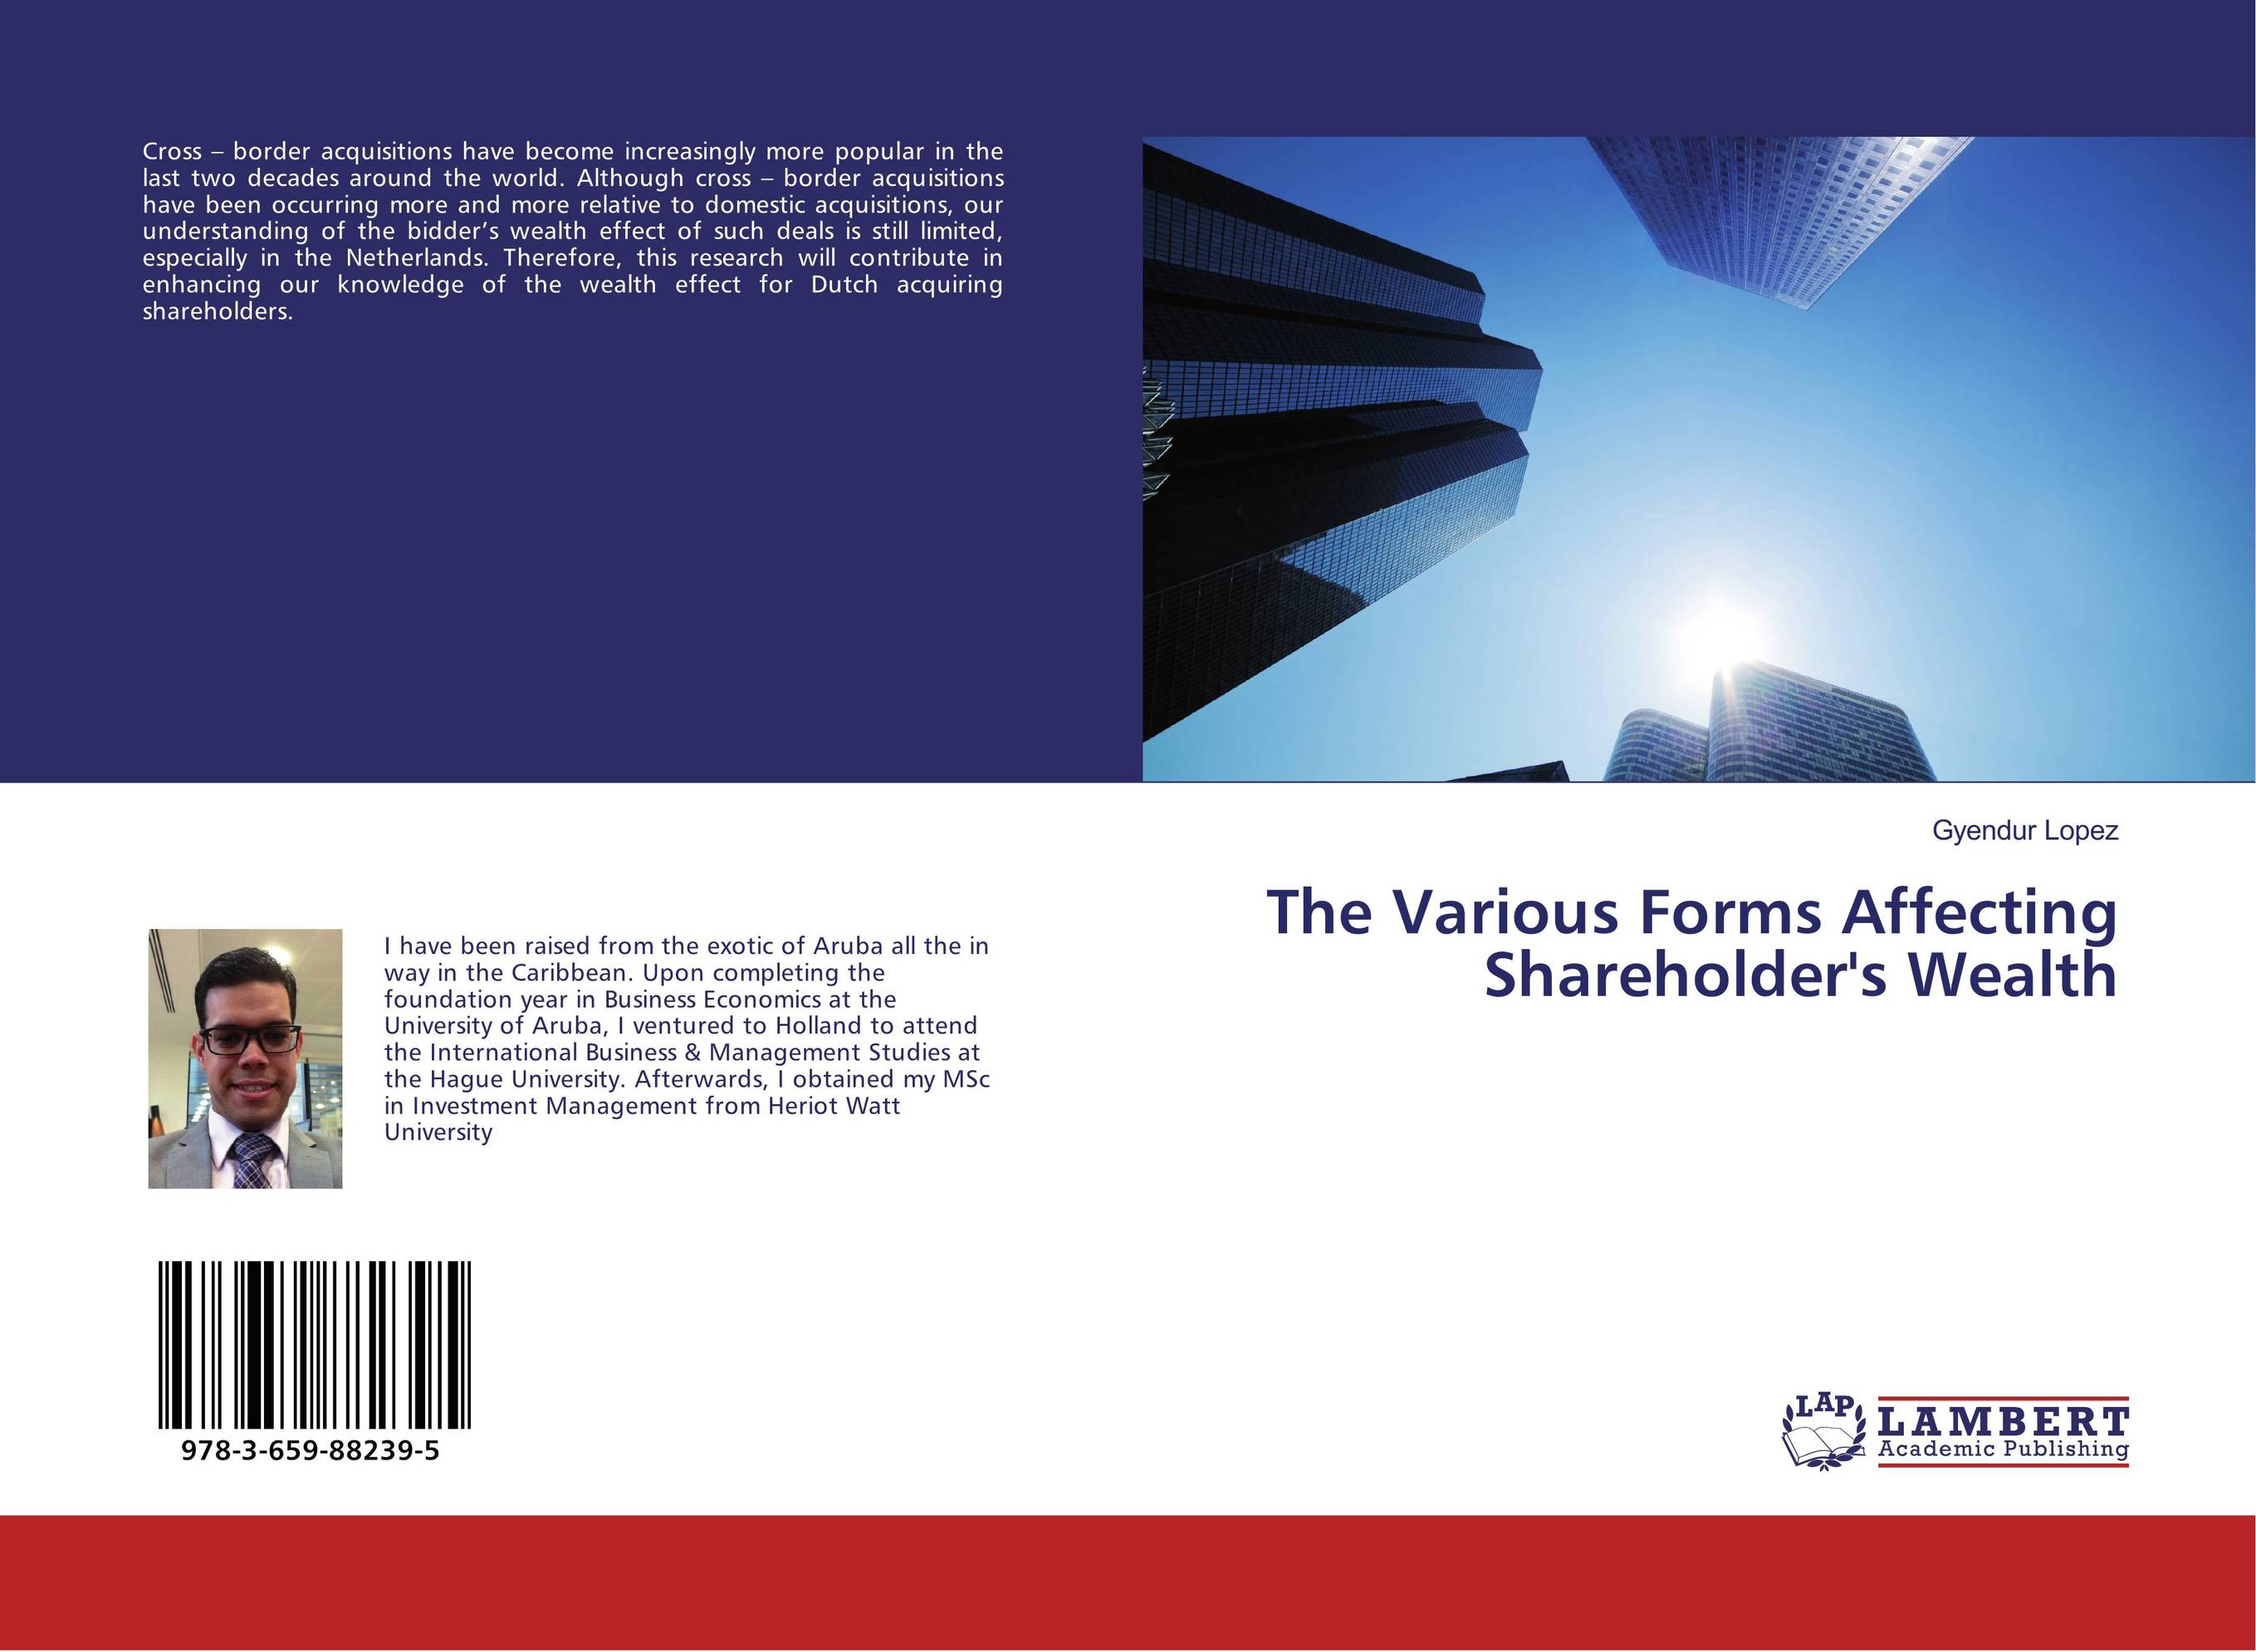 The Various Forms Affecting Shareholder's Wealth цена и фото